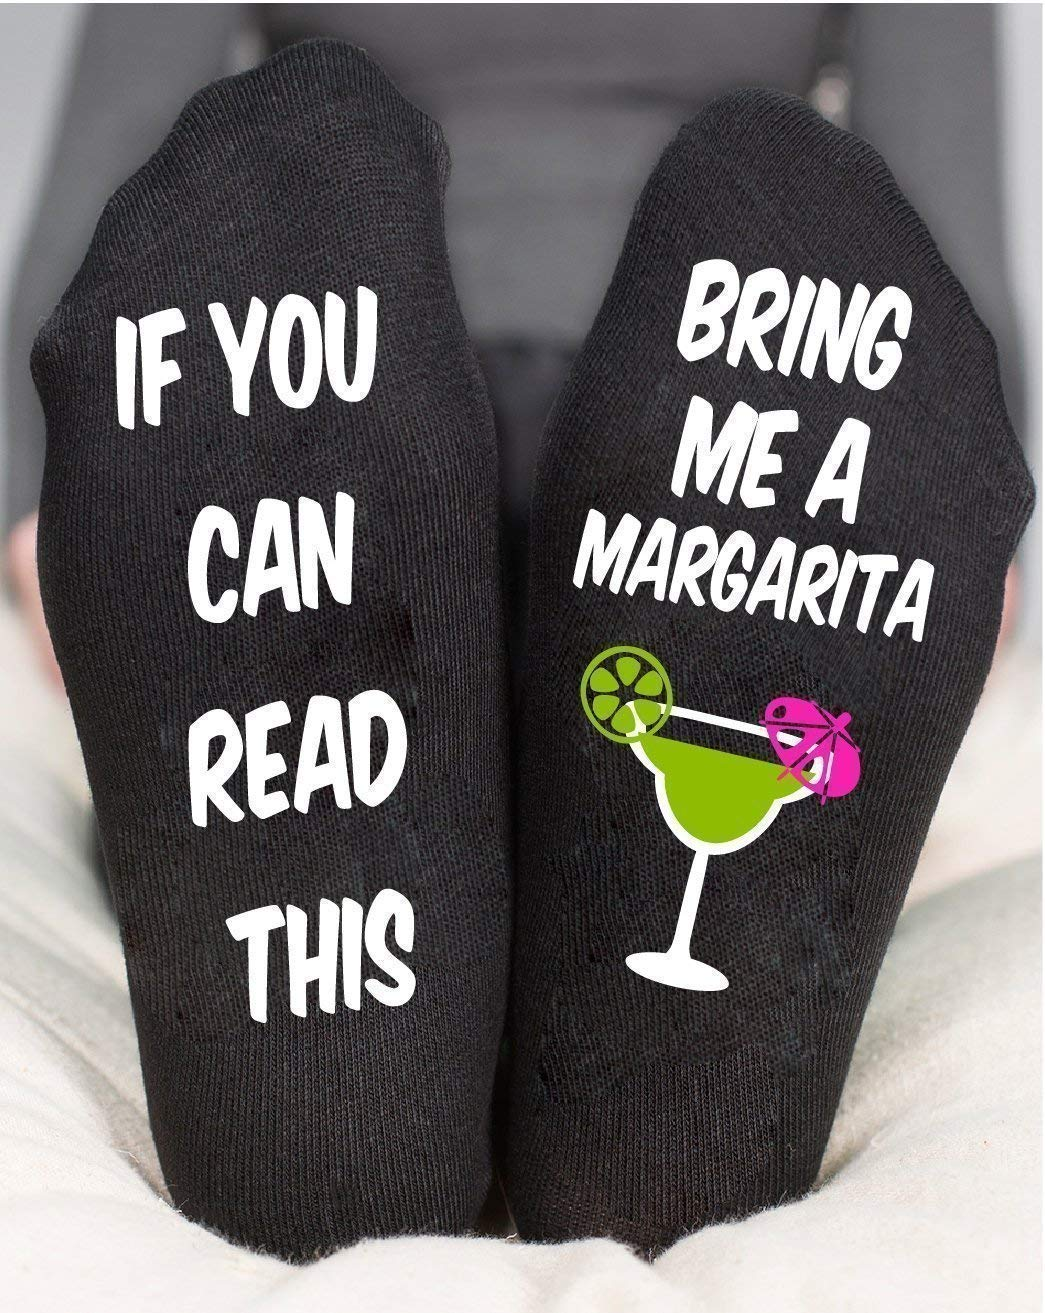 Bring Me A Margarita Socks If You Can Read This Birthday Gift